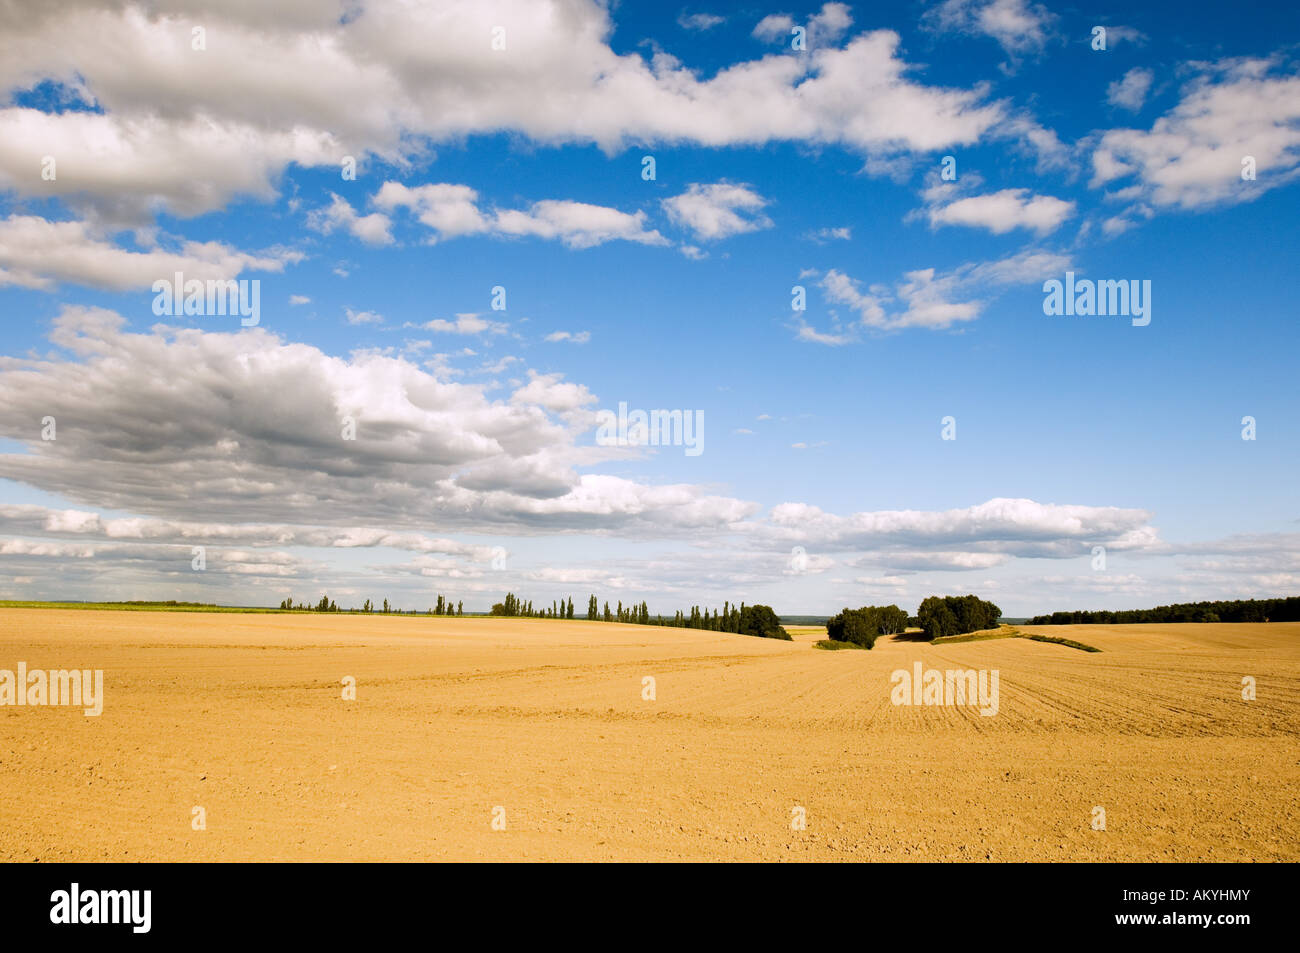 Sky, clouds and sand, plowed field in the late summer in the Flaeming, Germany - Stock Image